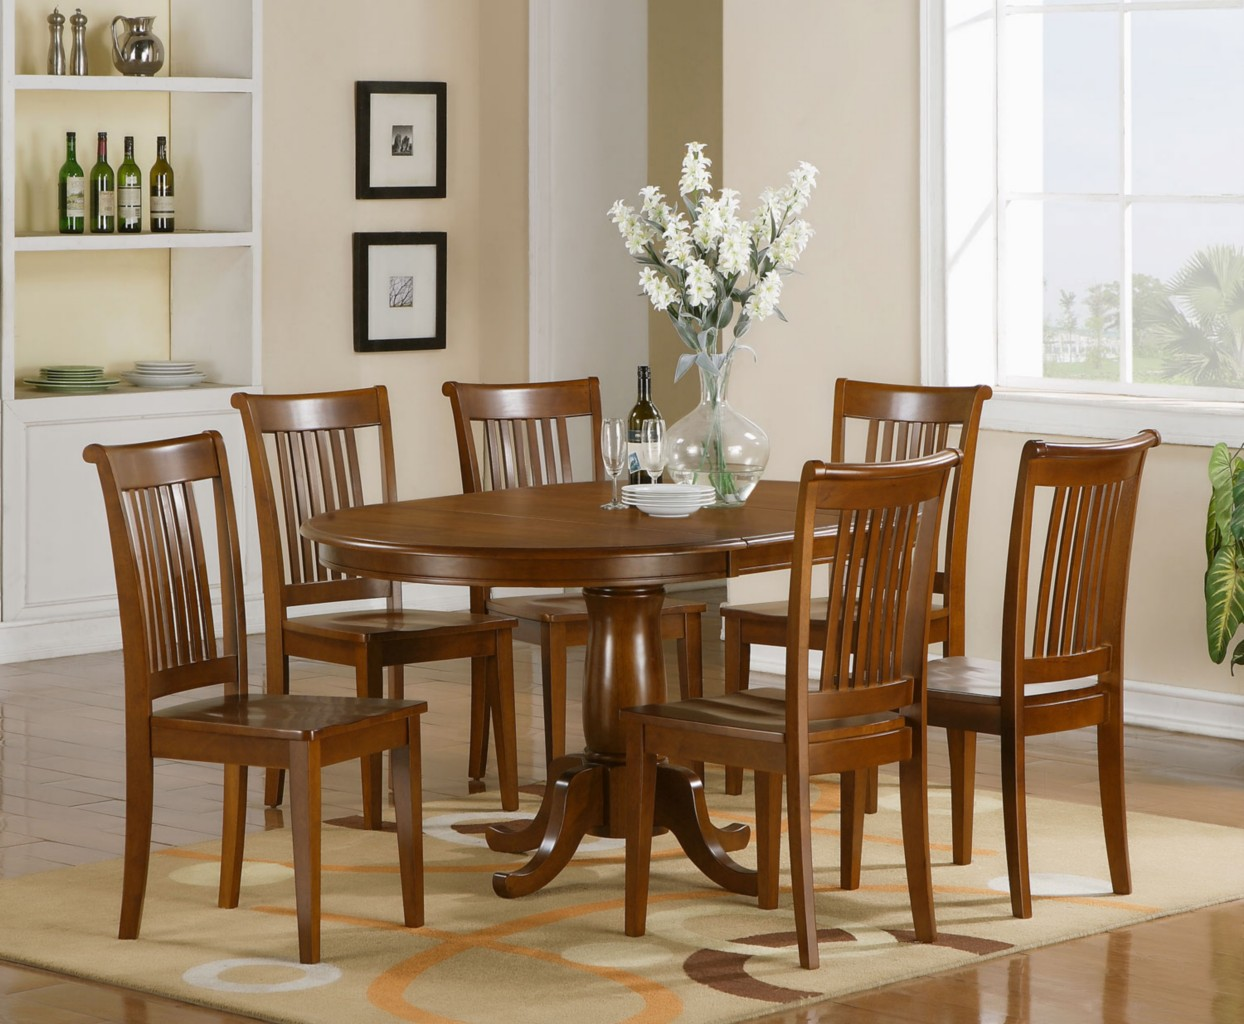 Perfect Round Kitchen Table and Chairs Set 1244 x 1024 · 229 kB · jpeg